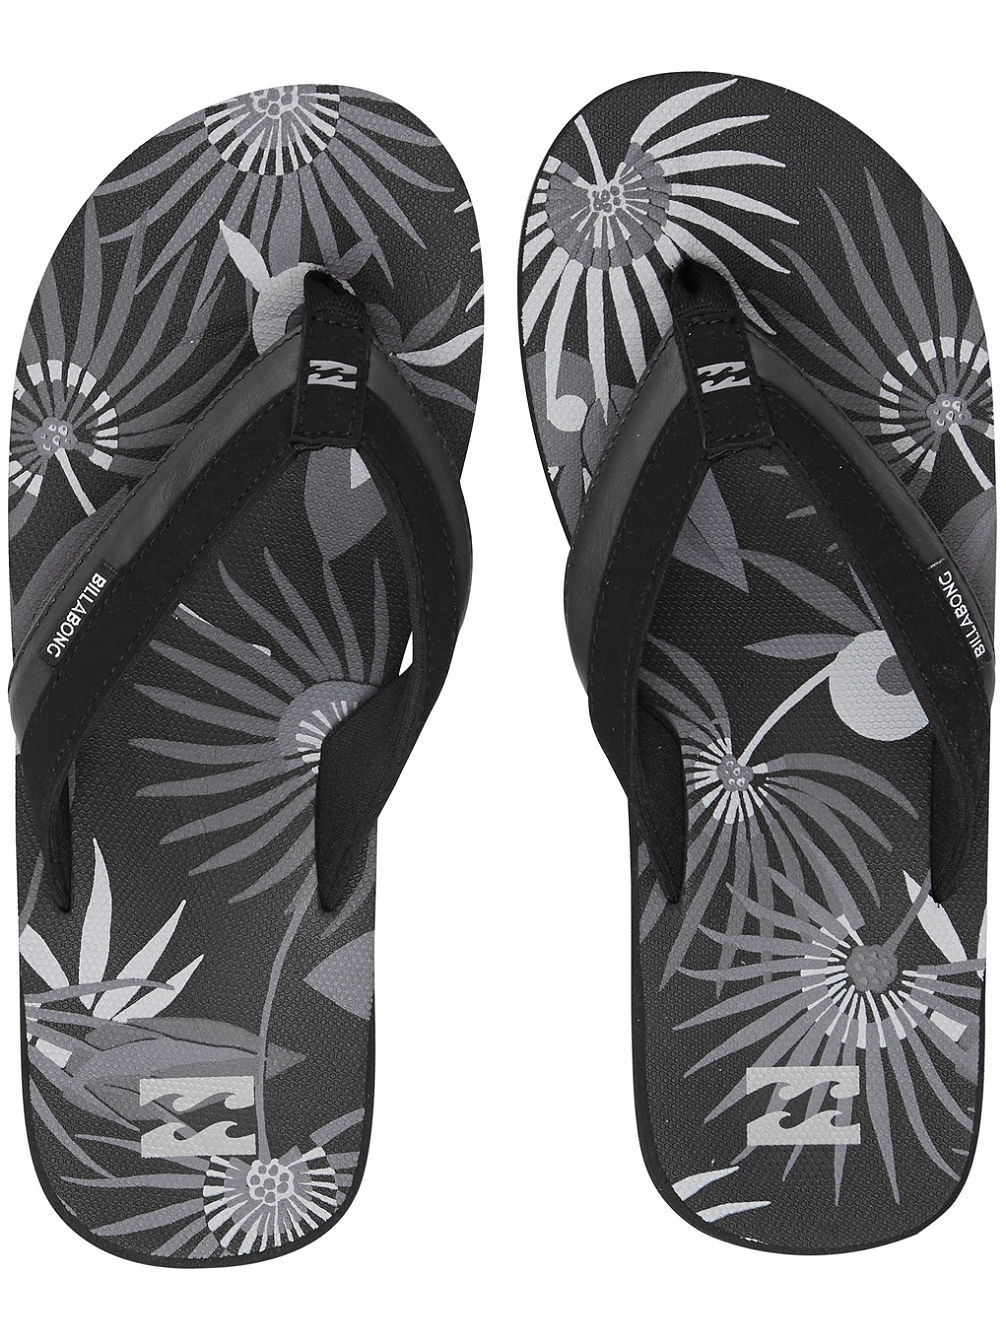 All Day Impact Print Sandals